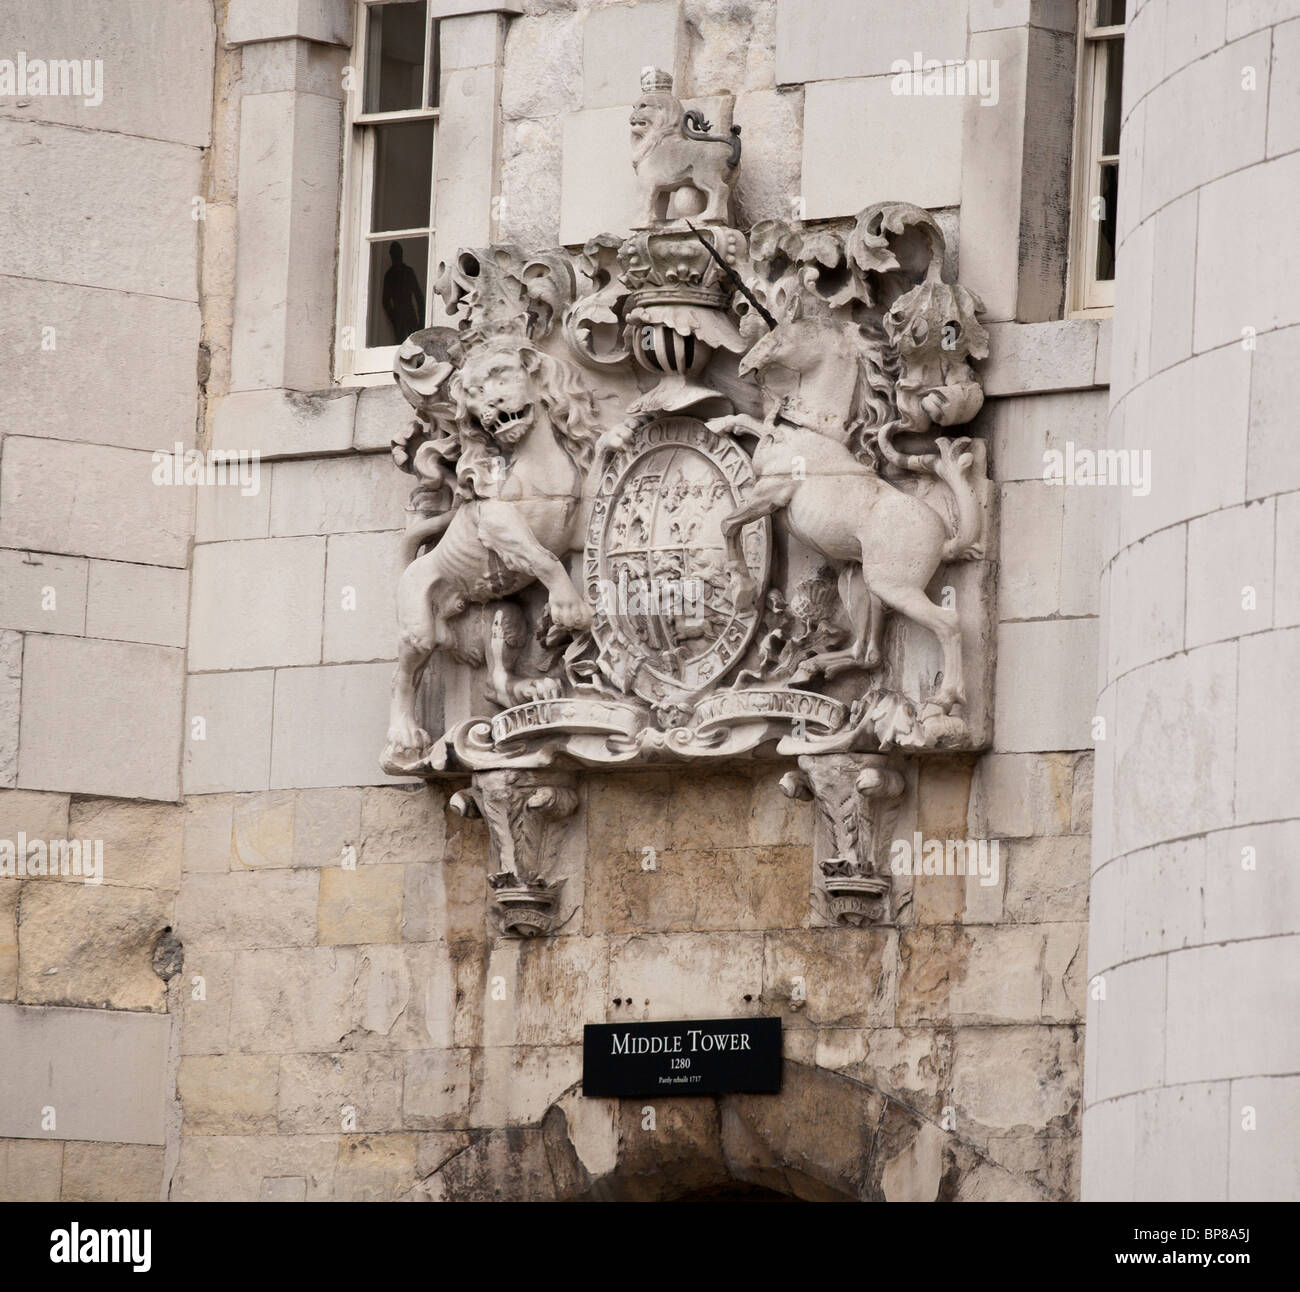 Royal Crest above the entrance to the Middle tower of the Tower of London - Stock Image